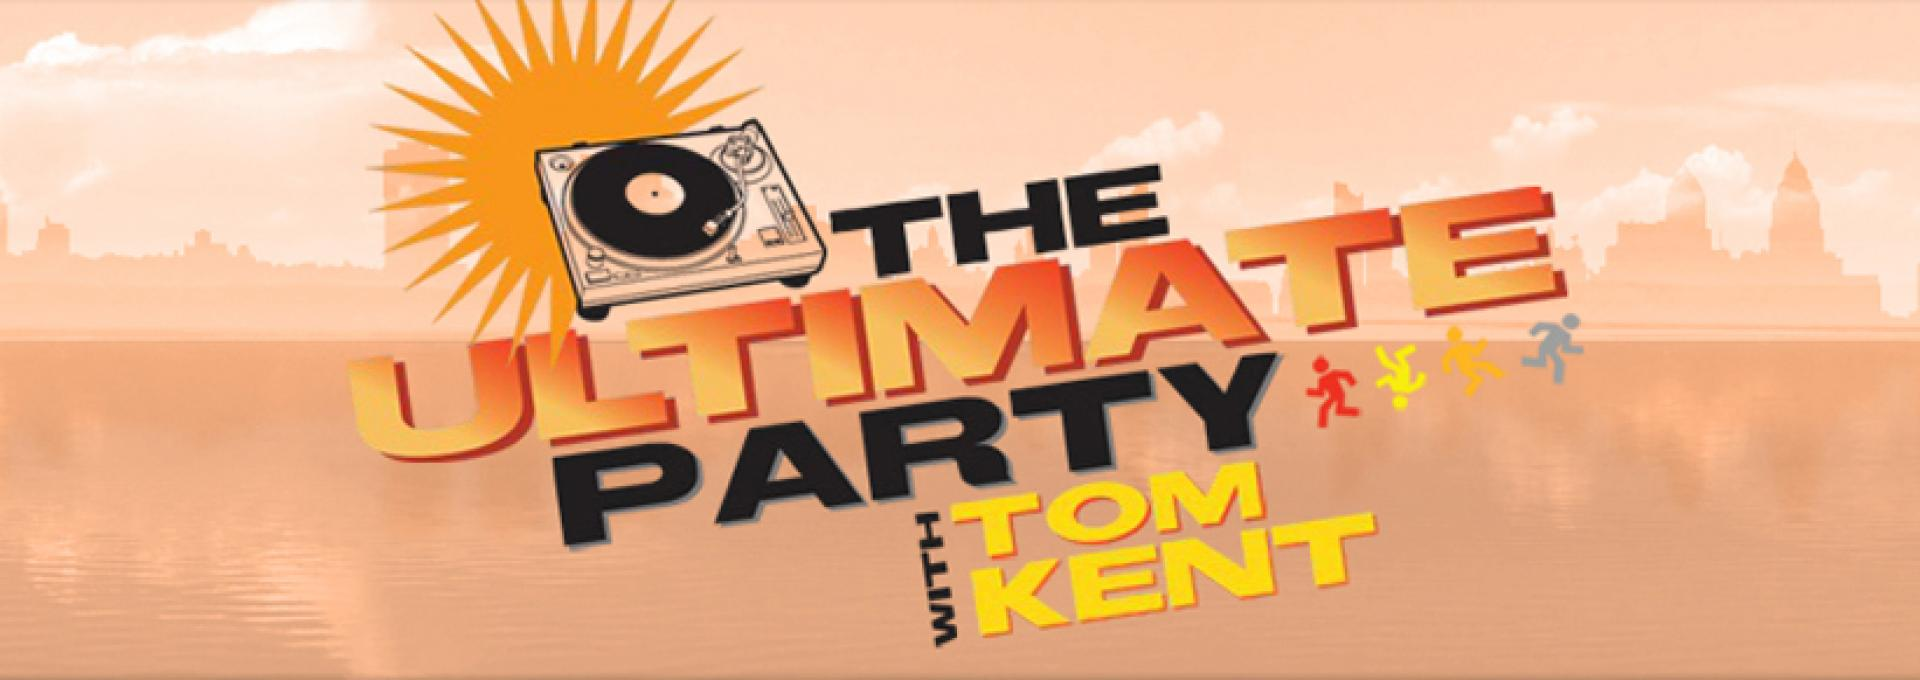 THE ULTIMATE PARTY with Tom Kent hero